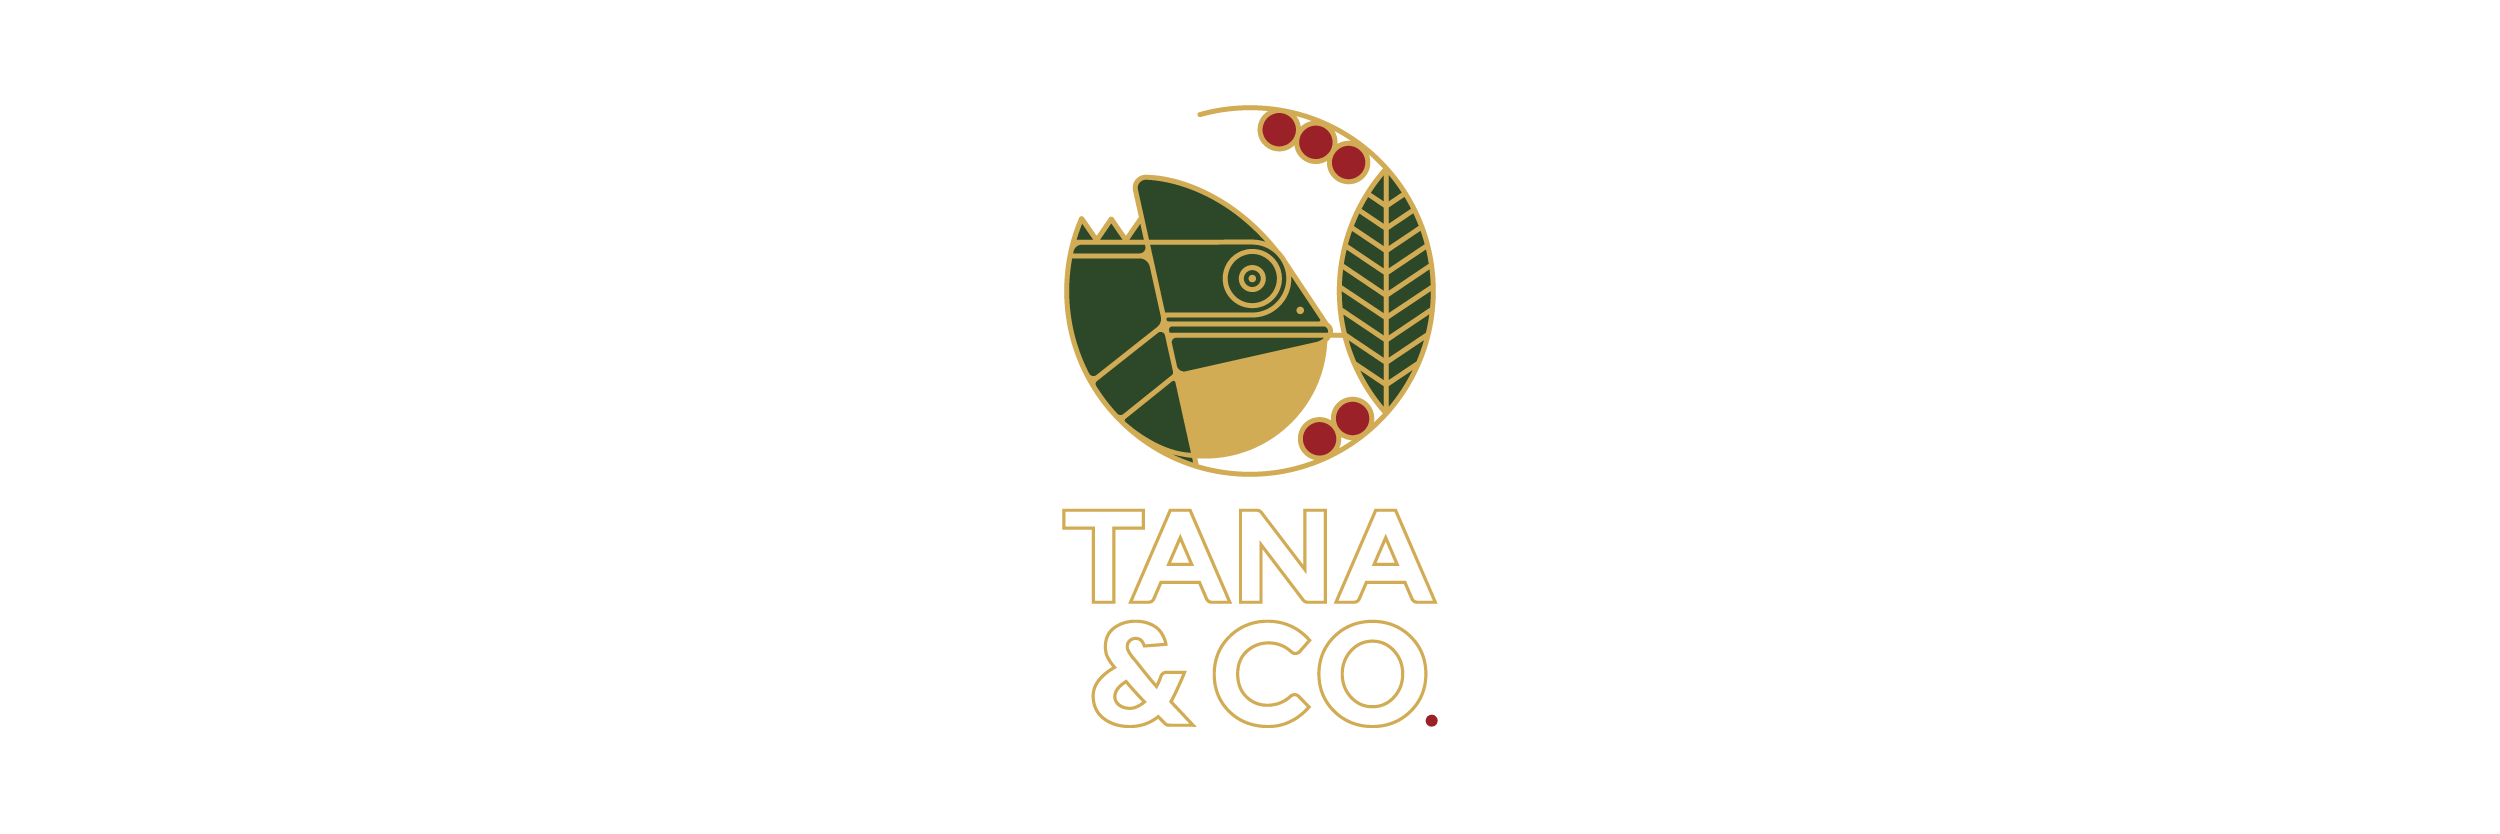 Tana & Co. by Filipe Amado